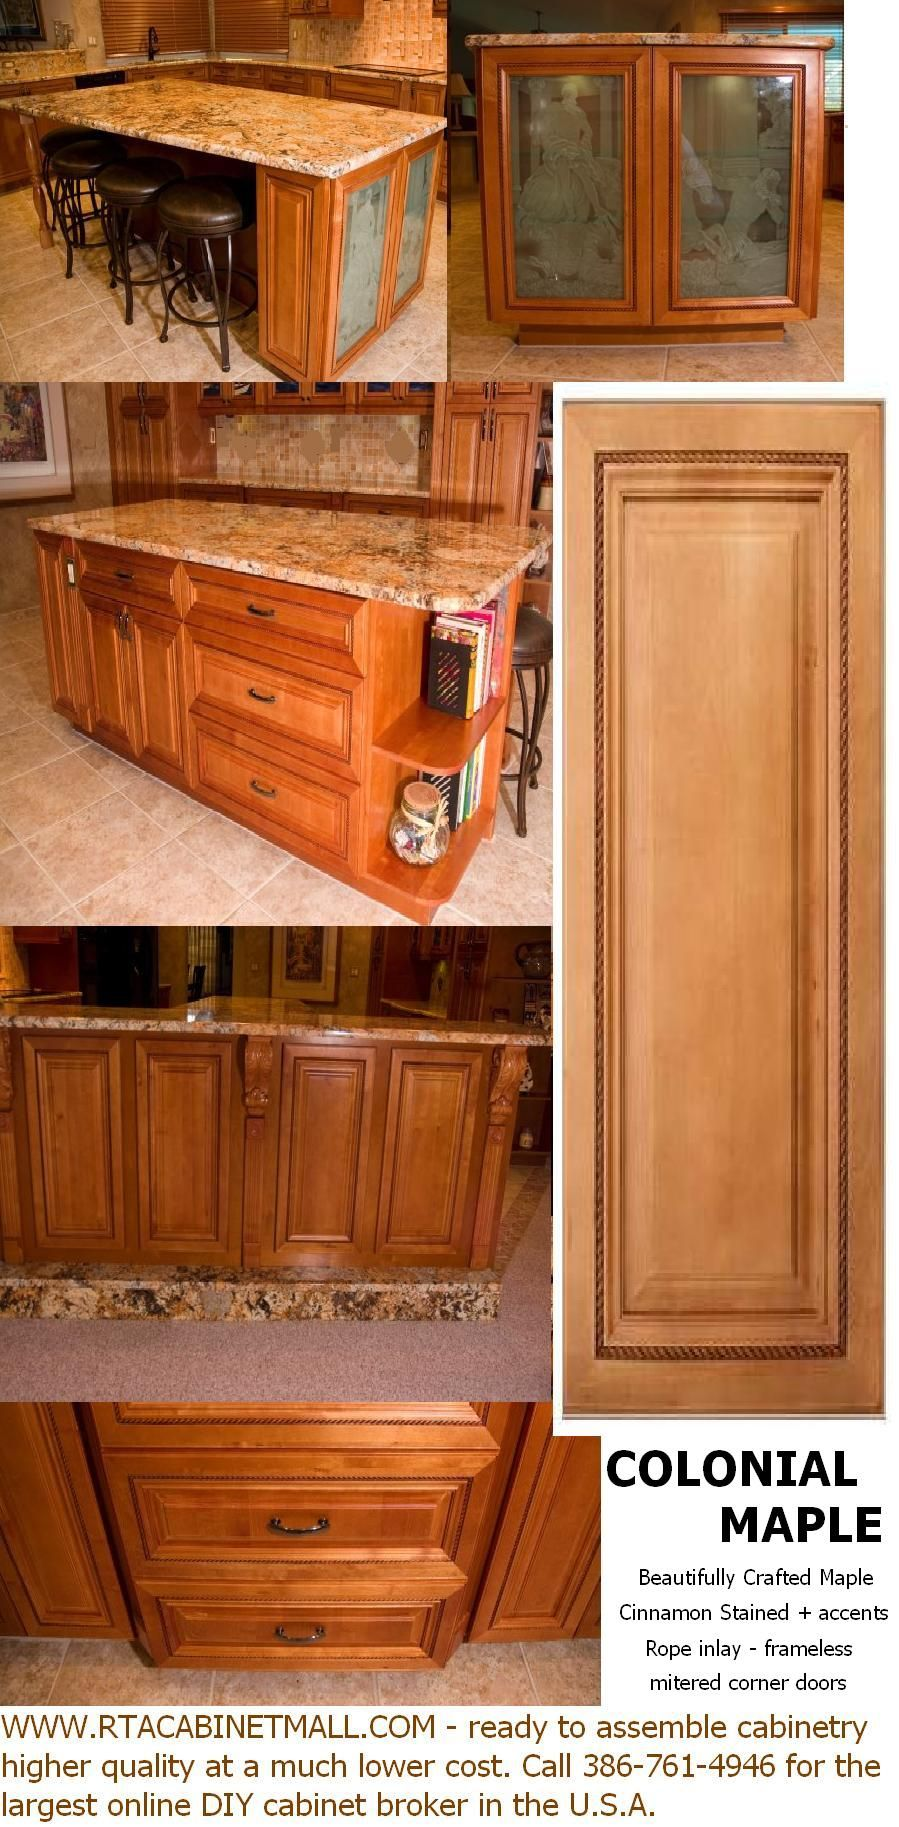 Colonial Maple Rta Cabinets Ready To Assemble Cabinets Frameless Kitchen Cabinets Kitchen Cabinet Kings Small Kitchen Cabinet Design